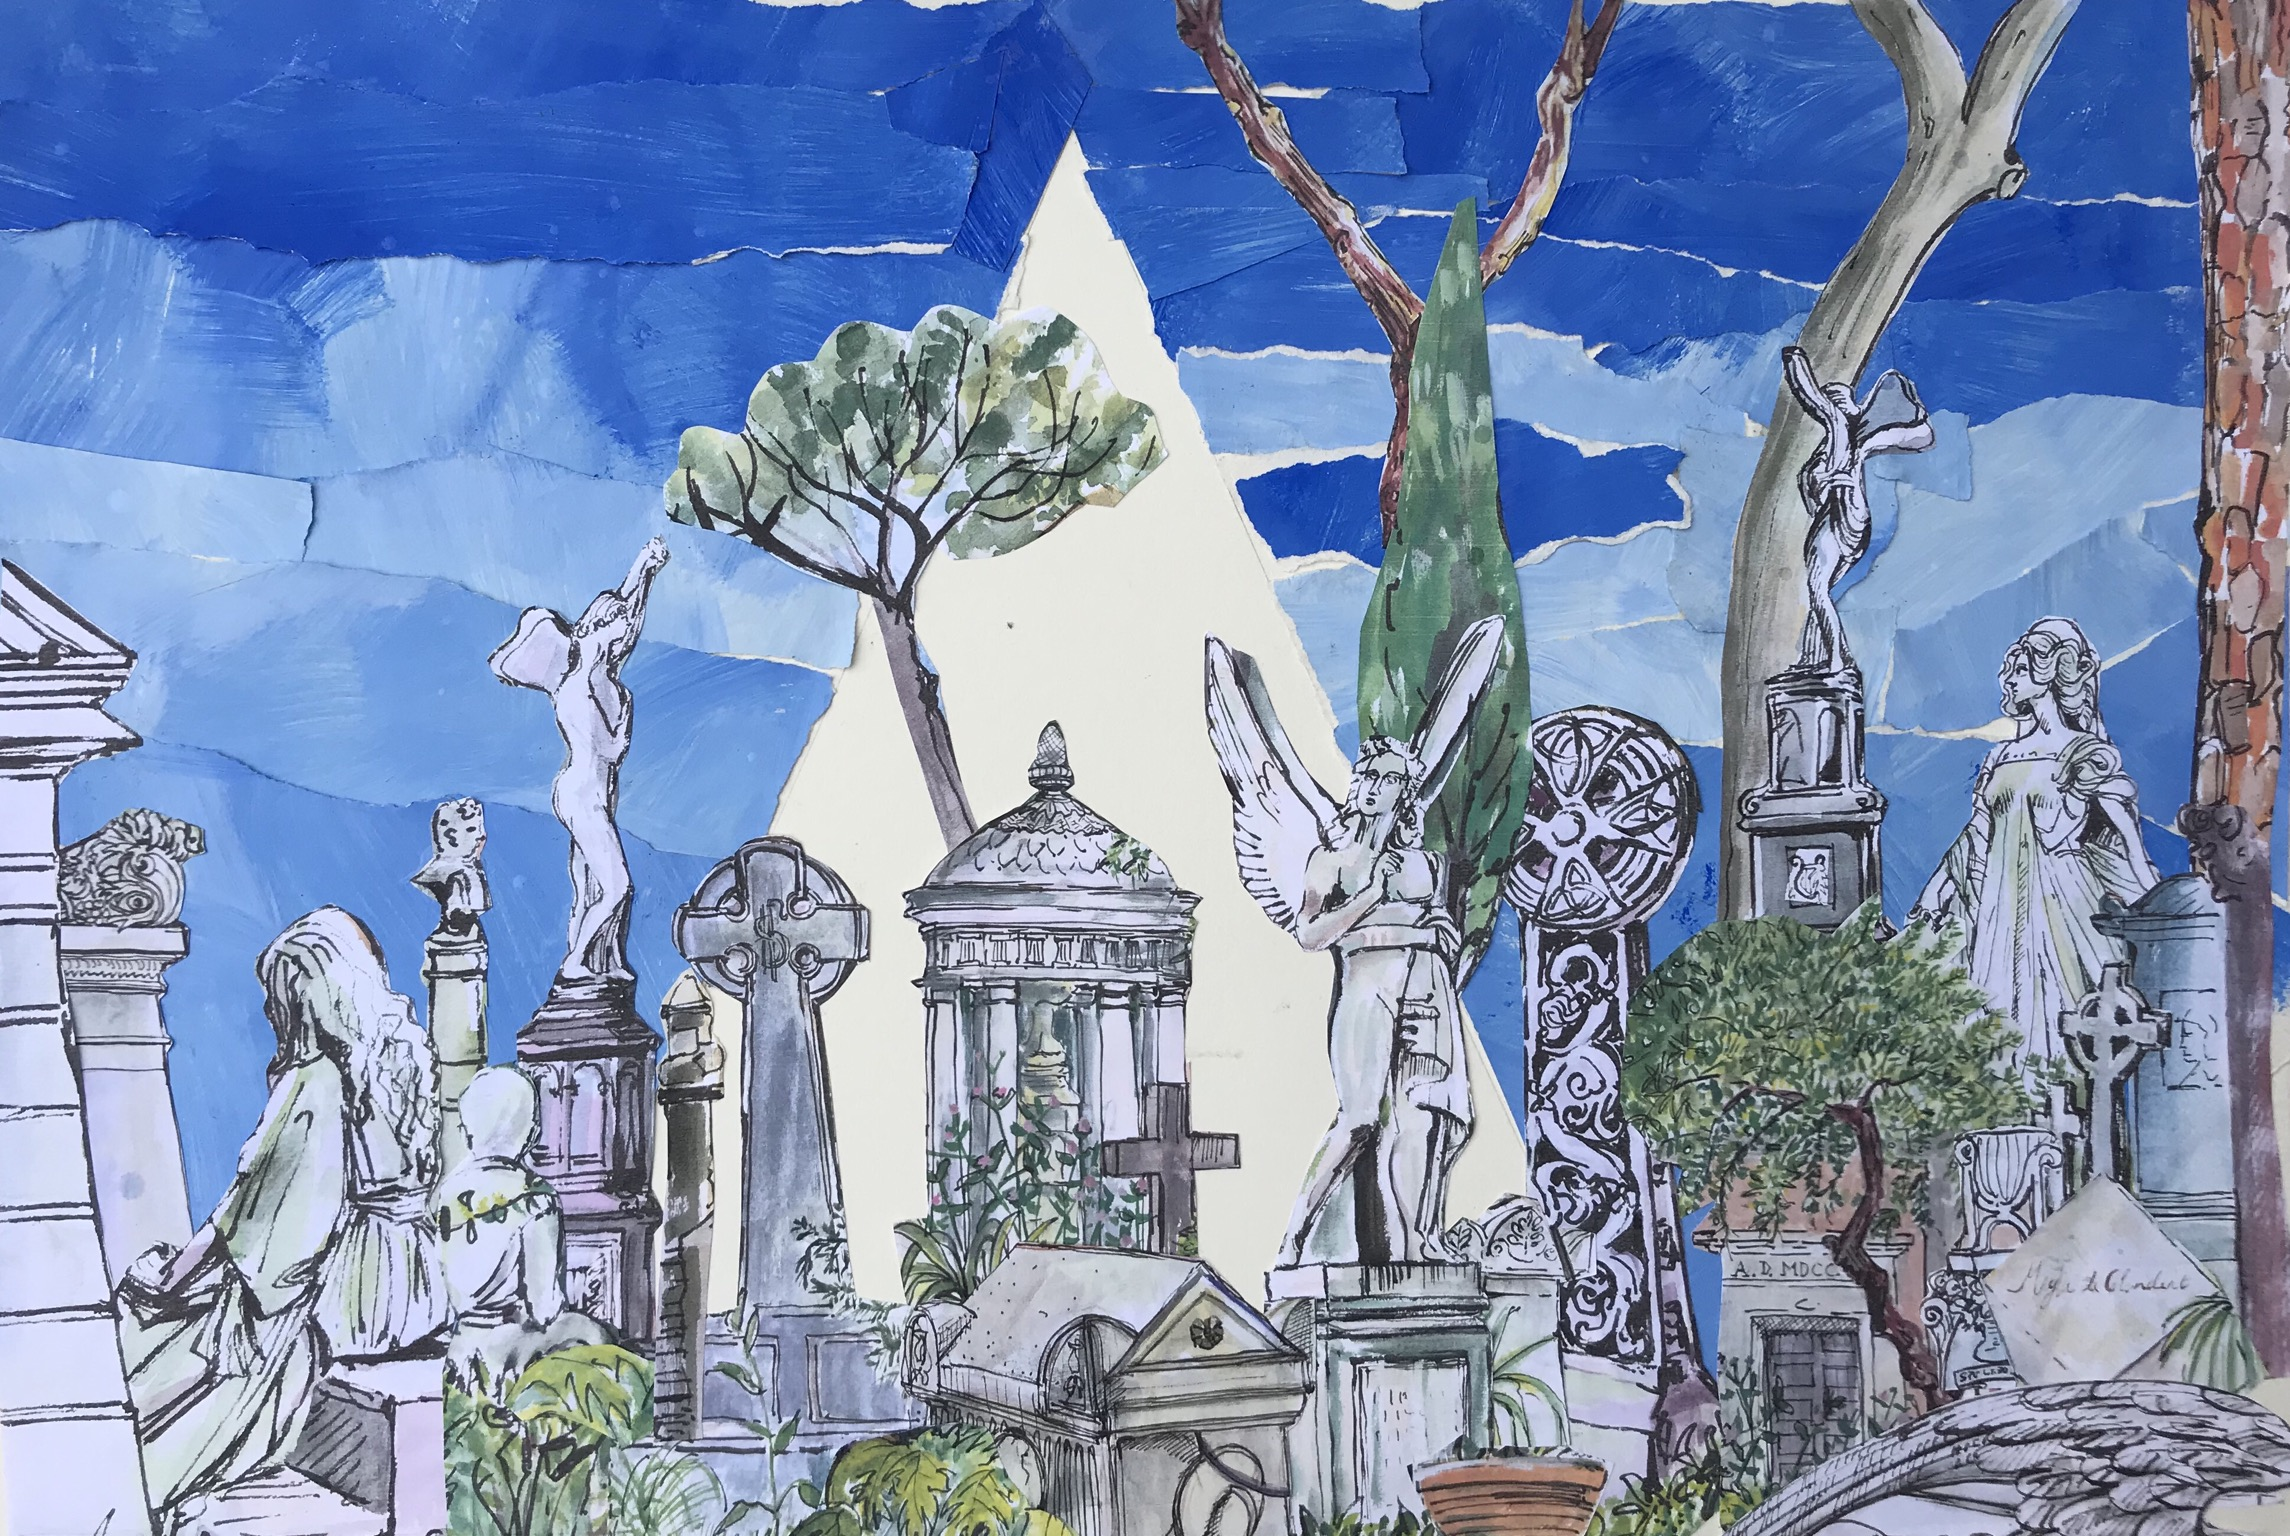 The Pyramid Non Catholic Cemetery of Rome.(collage)66 x 49cm £60 framed -